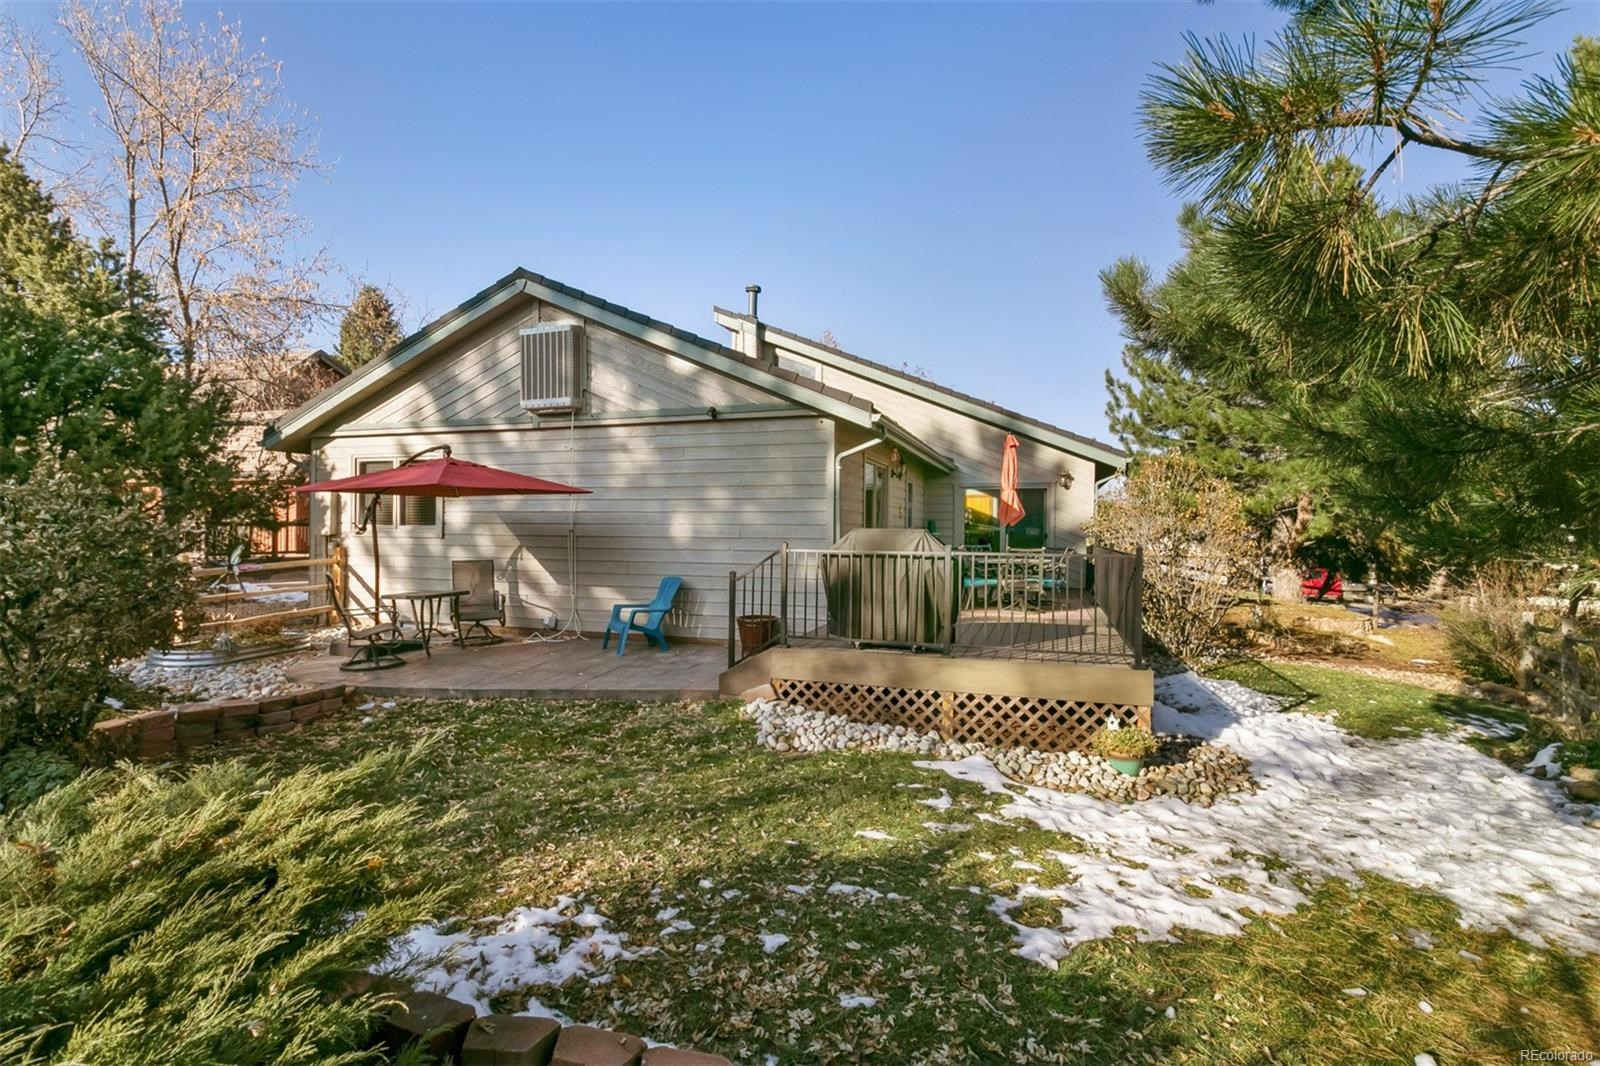 MLS# 4160125 - 34 - 15778 Cleekwood Way, Morrison, CO 80465